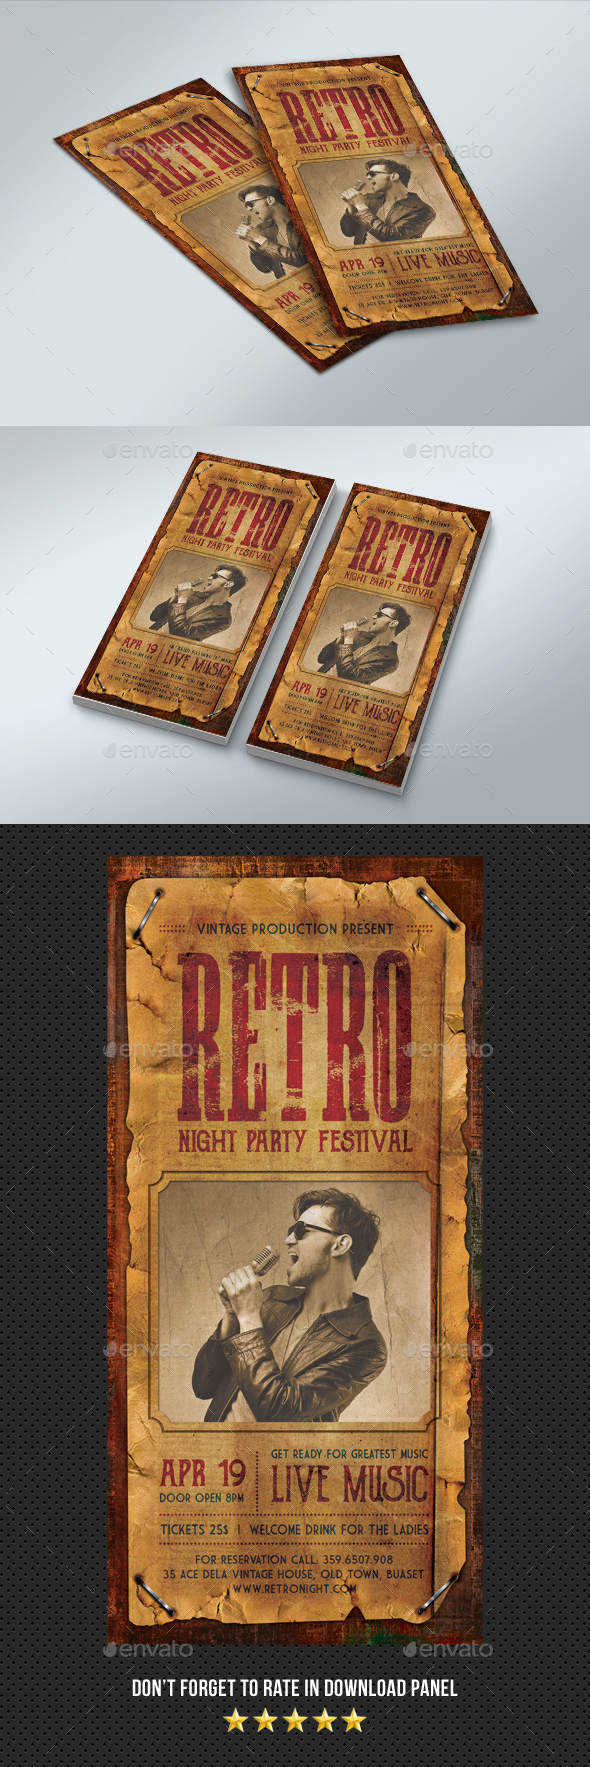 DL Retro Flyer - Events Flyers